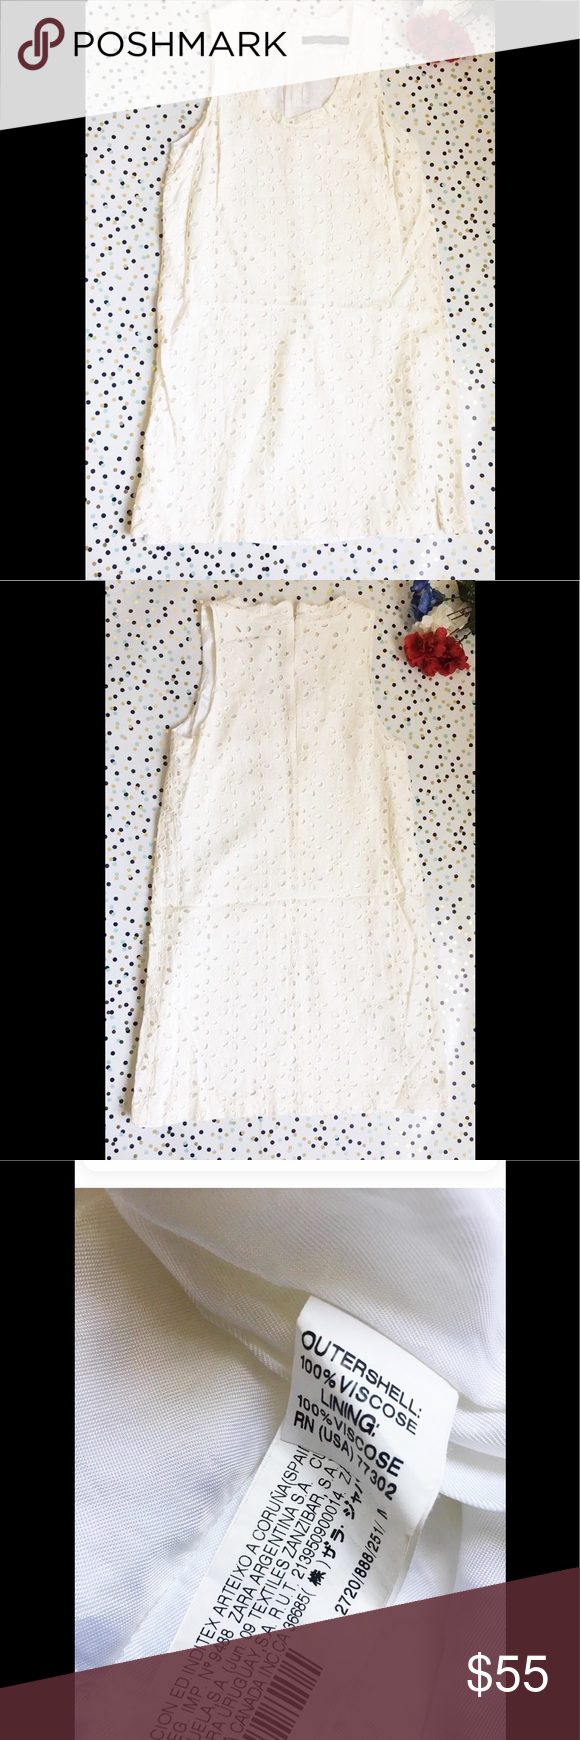 """Zara Women Crewneck Cream Short Dress Size Medium Zara Women Cream Short Dress Size Medium Length:31""""  Armpit to armpit:14""""  Has minor signs of wear, the zipper might give trouble going up(not all time or major, just putting it out there)   Check out my other items! Zara Dresses"""